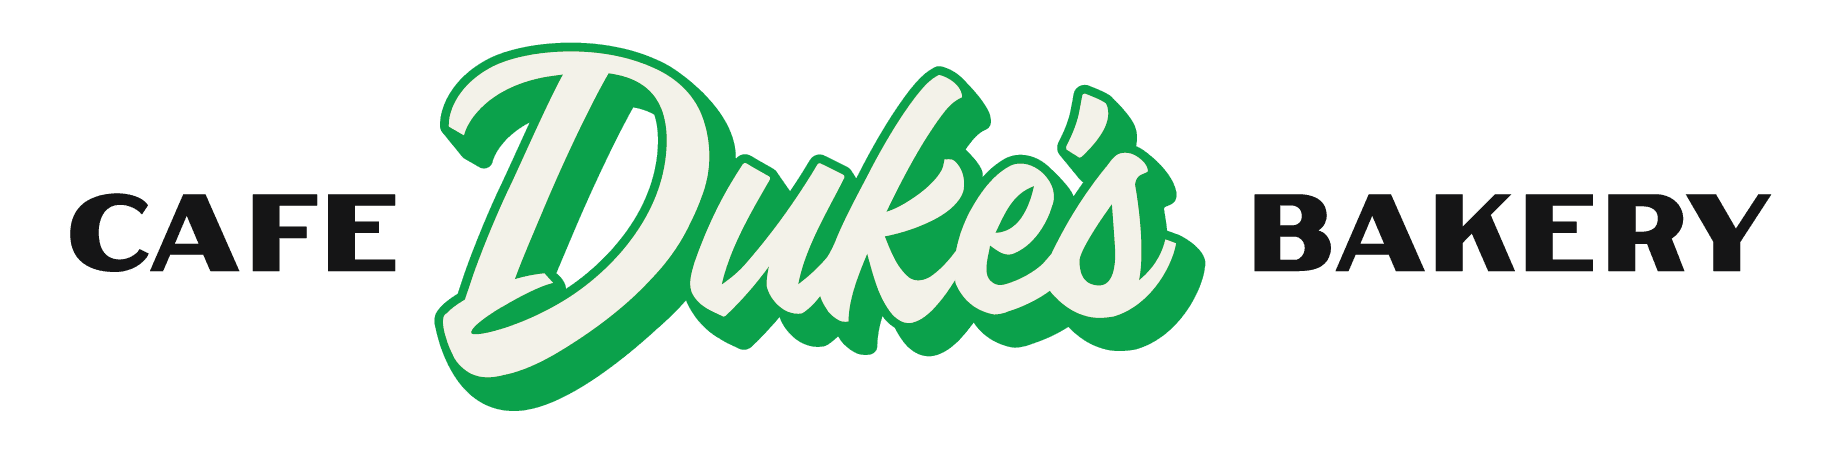 Dukes Cafe and Bakery